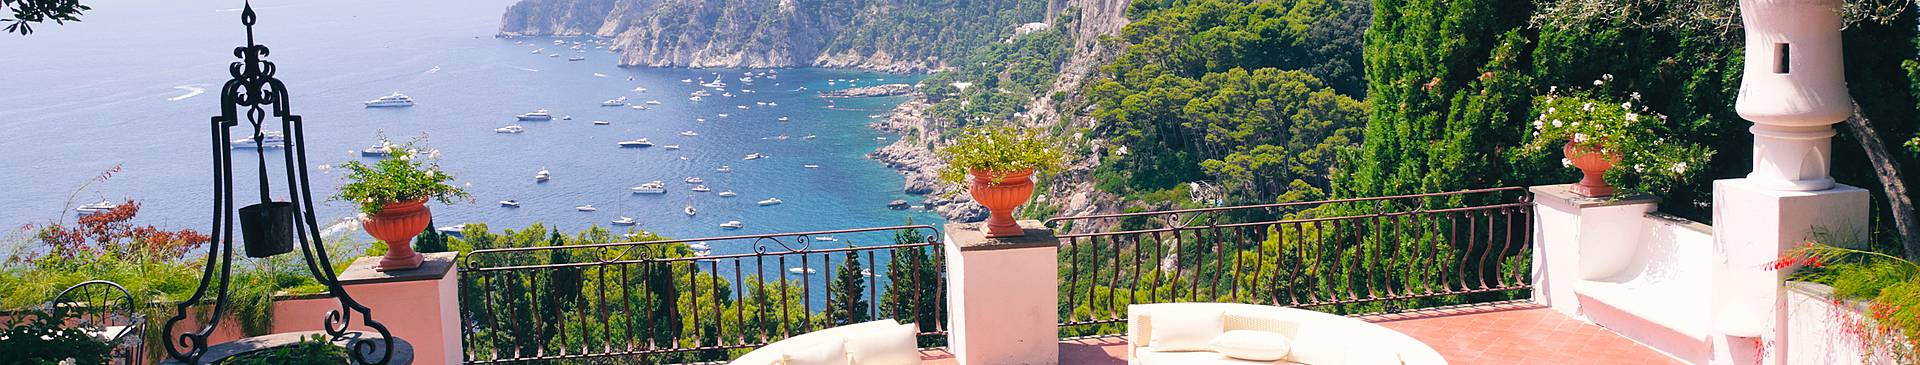 Luxury vacations in Italy